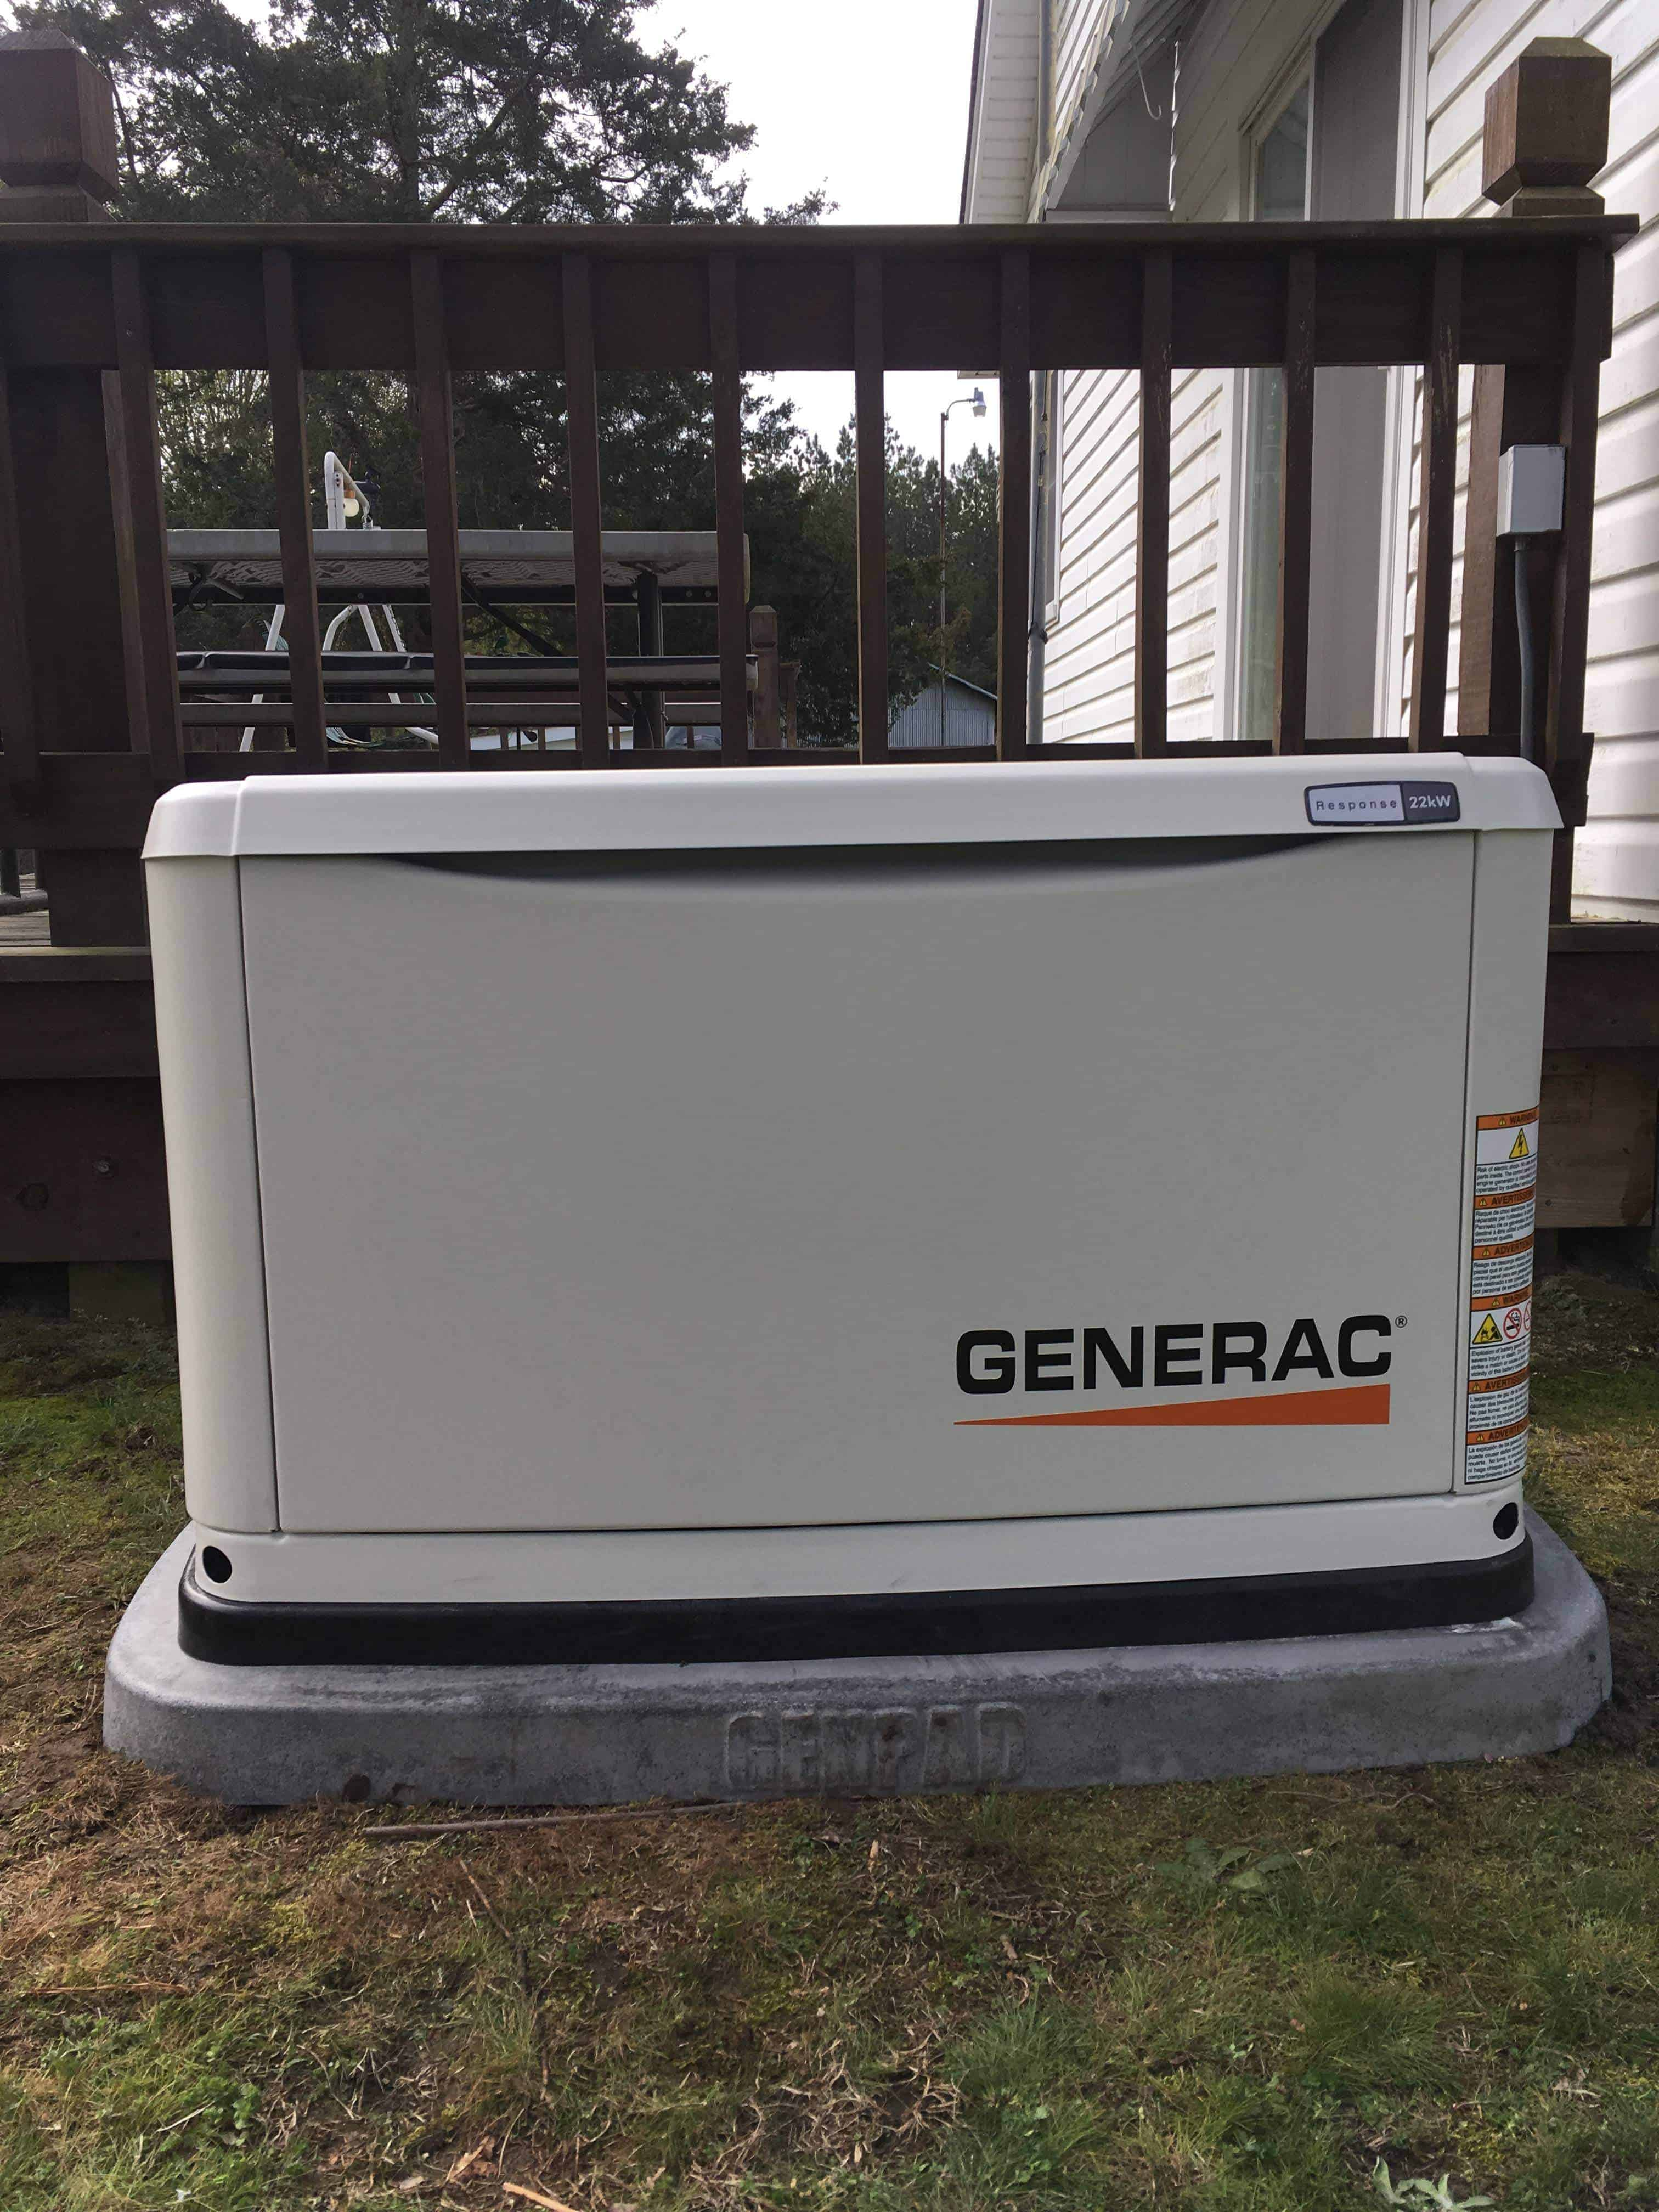 Automatic Standby Generac Generator Nottoway County